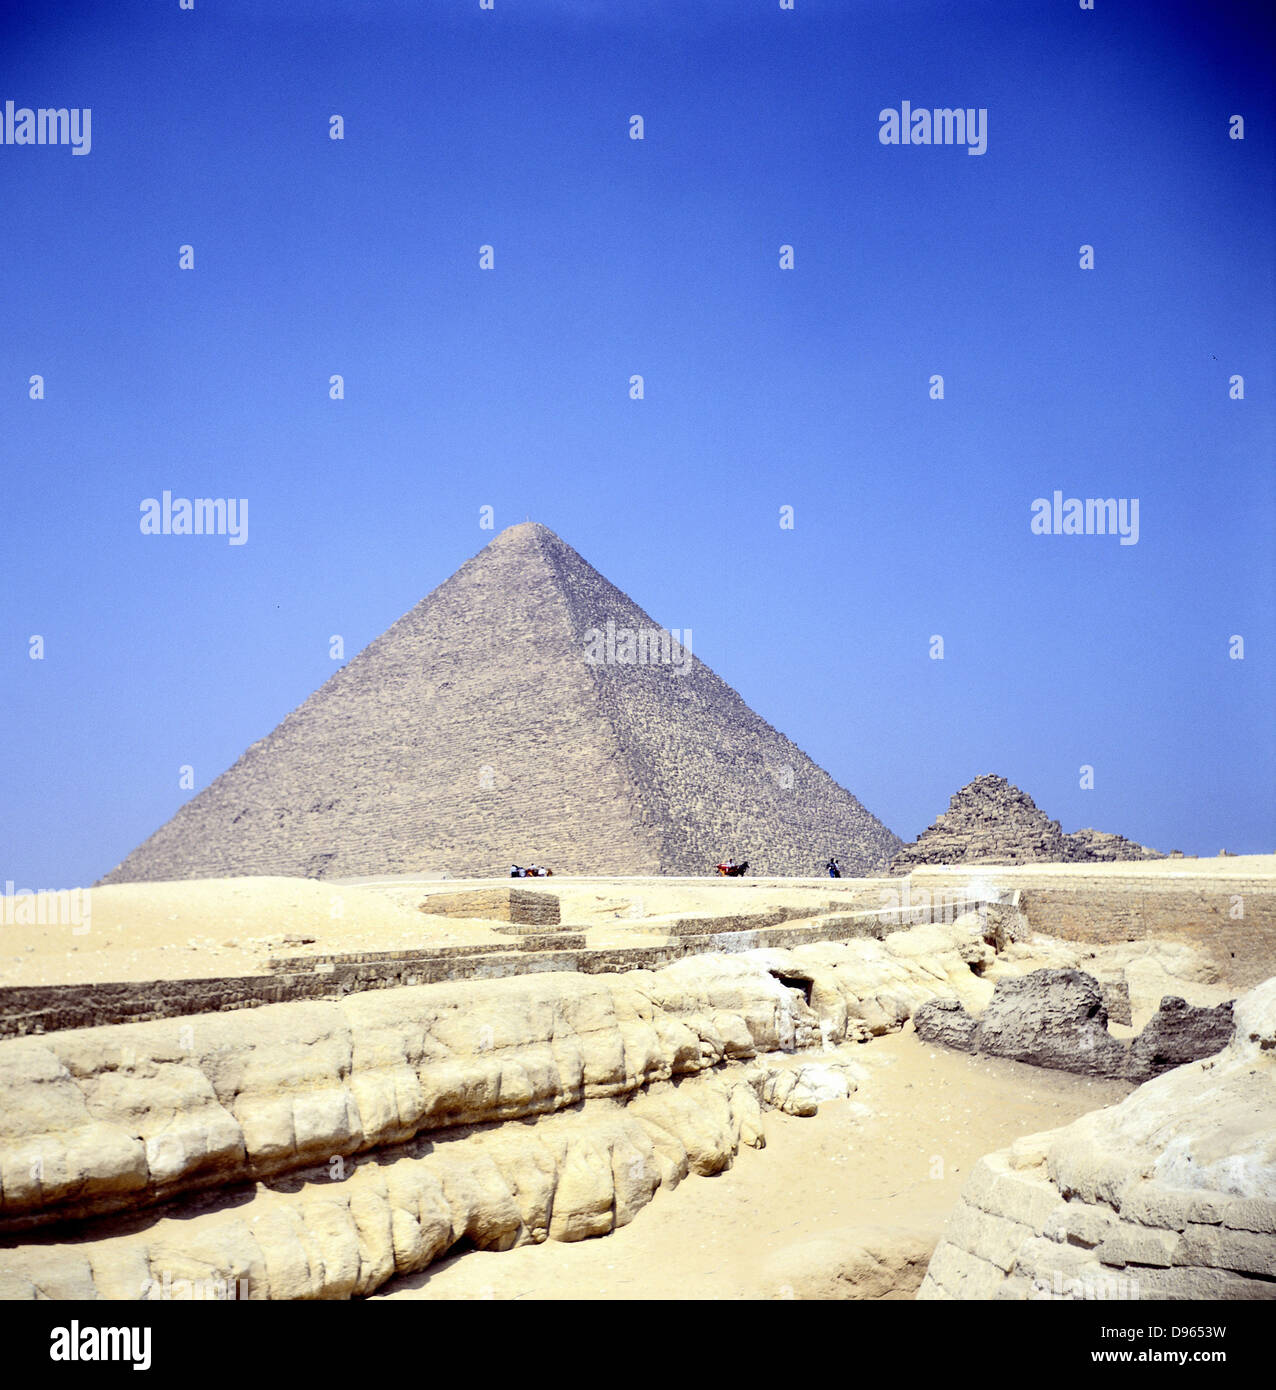 Pyramid at Giza. Pyramids one of  the Seven Wonders of the World - Stock Image